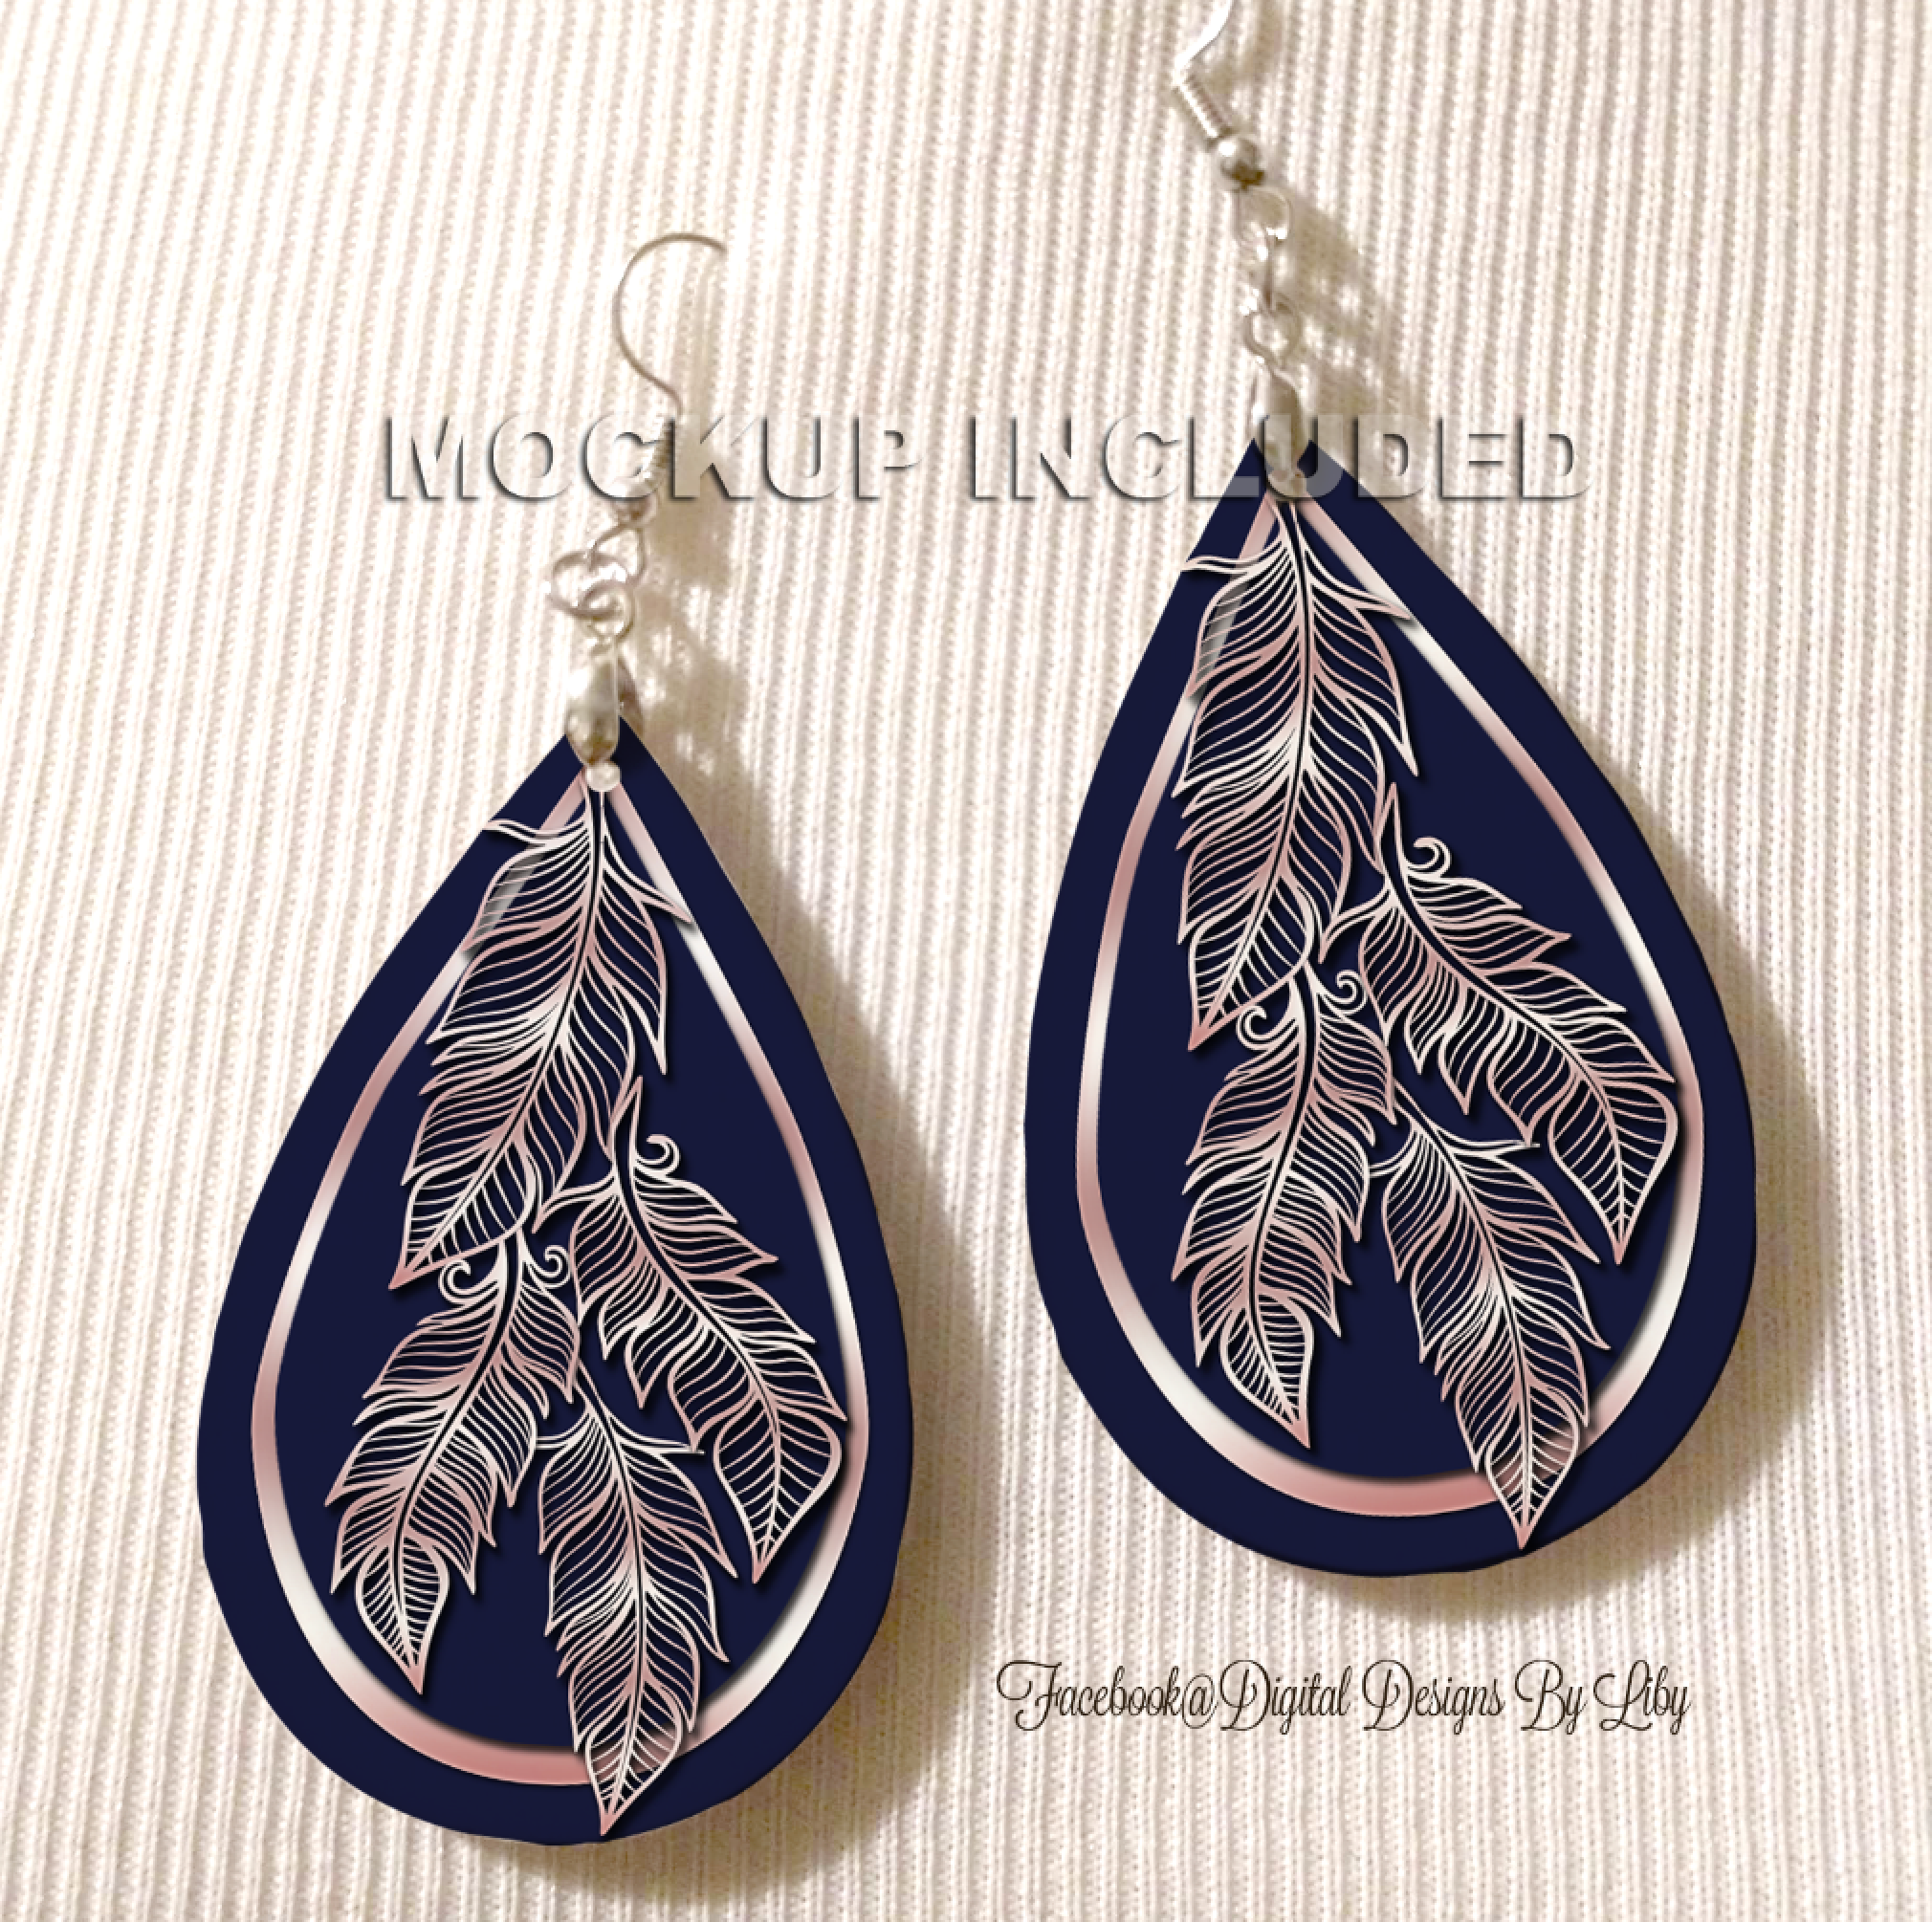 BOHO CHIC NAVY ROSE **Choose Earrings or Cuffs or Save $$ on the Set**